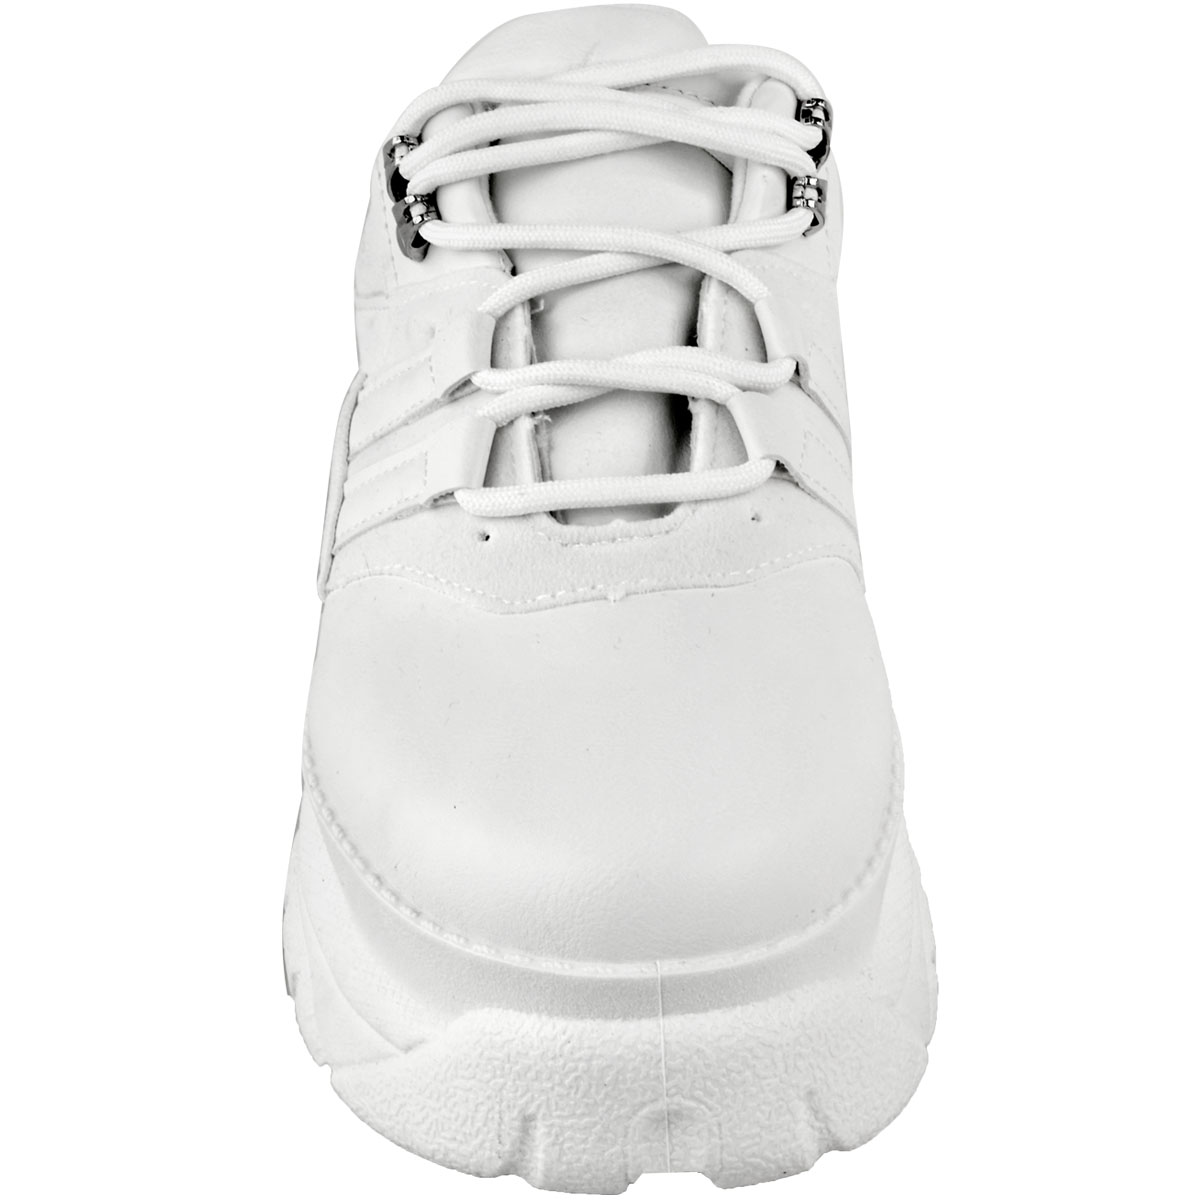 Womens-Ladies-High-Platform-Trainers-Sneakers-Retro-Boots-Chunky-Rock-Punk-Goth